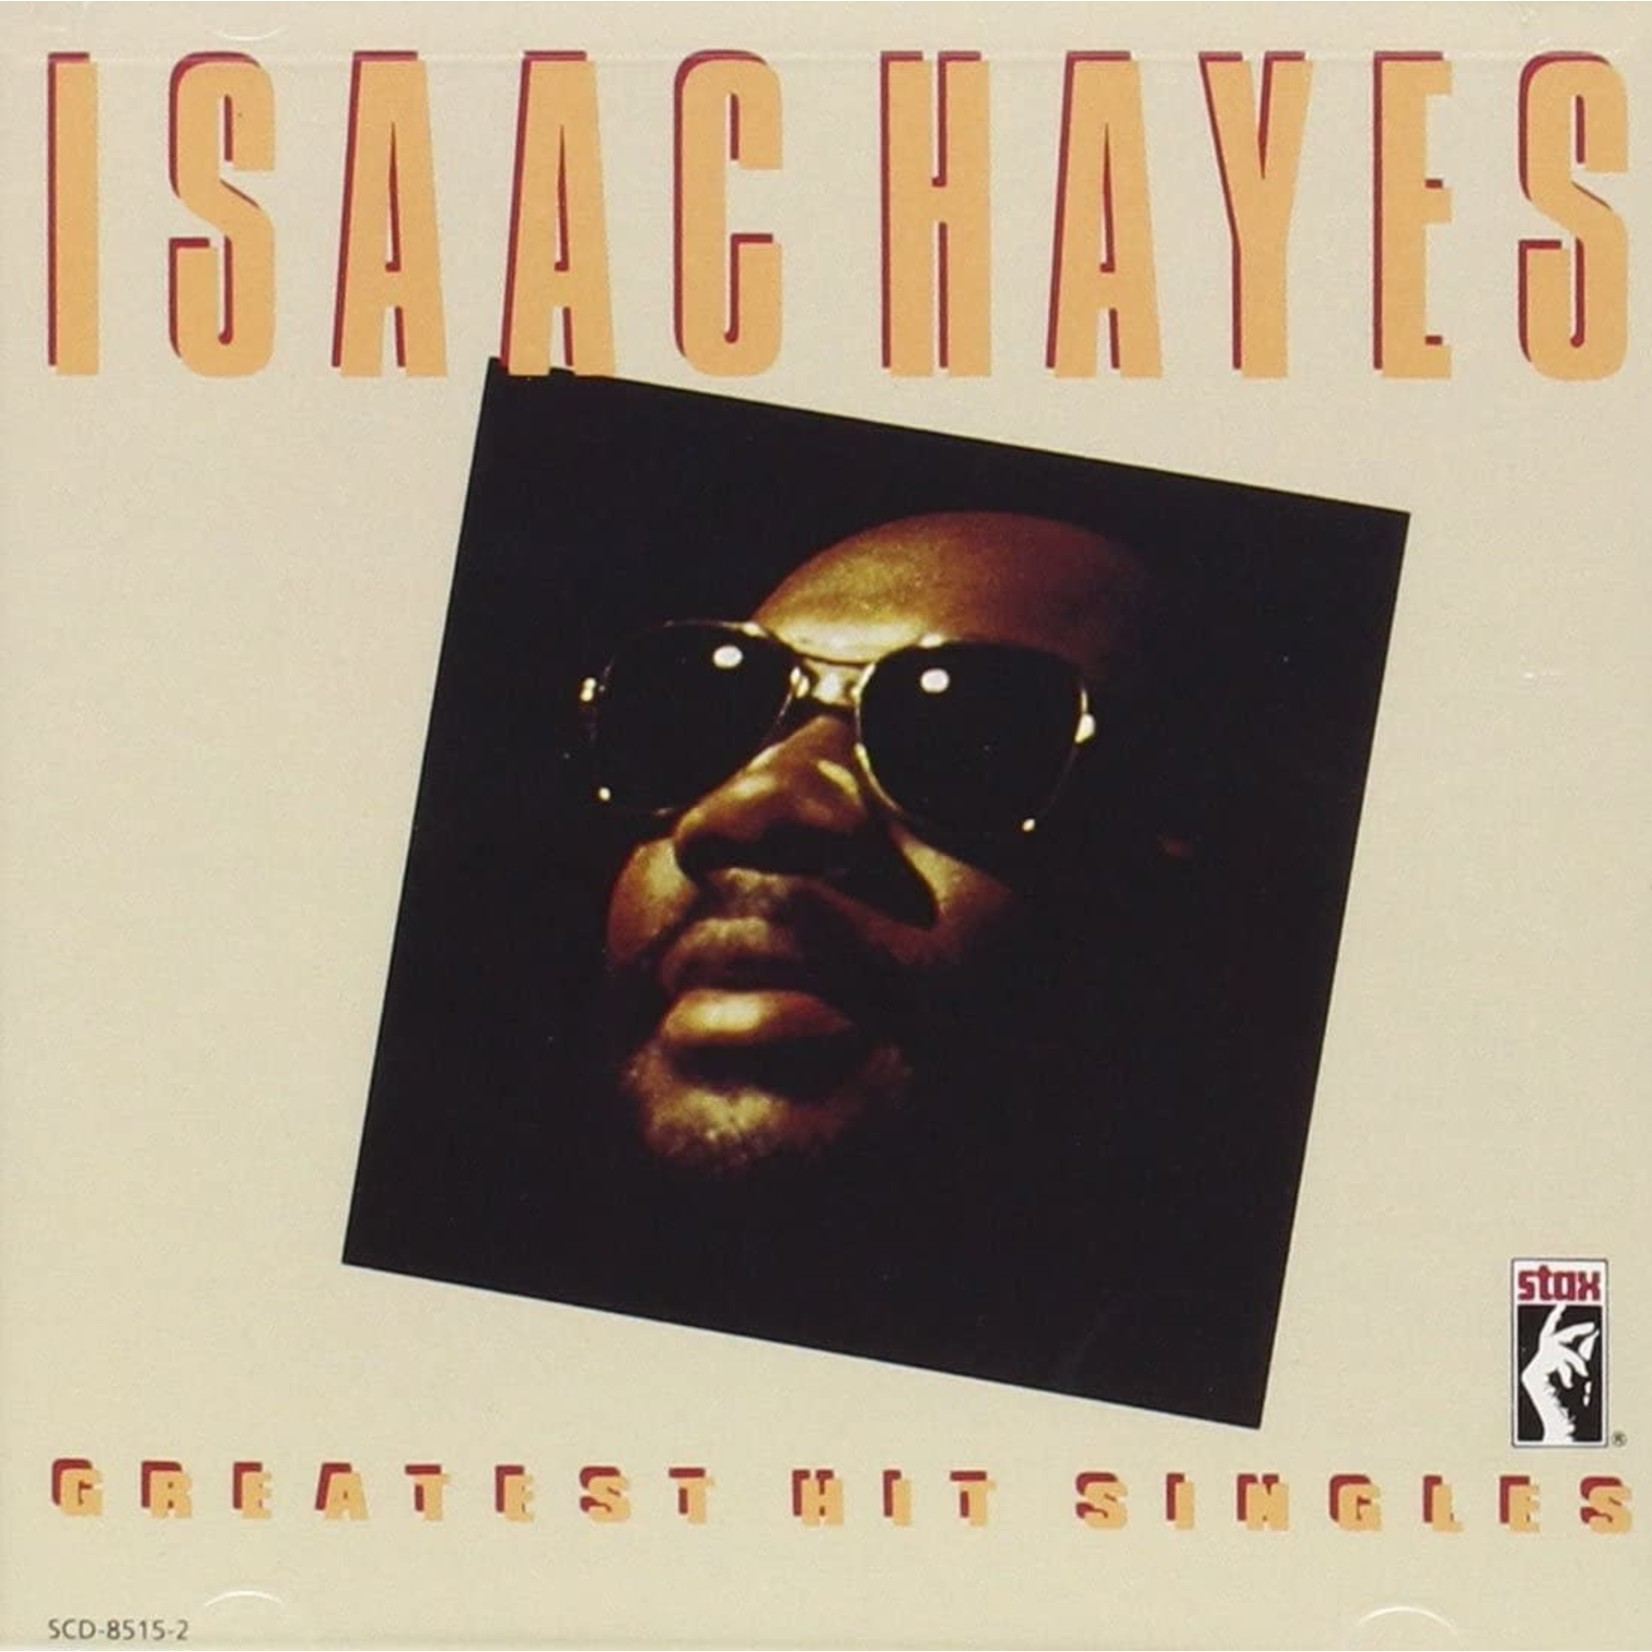 [New] Hayes, Isaac: Greatest Hit Singles